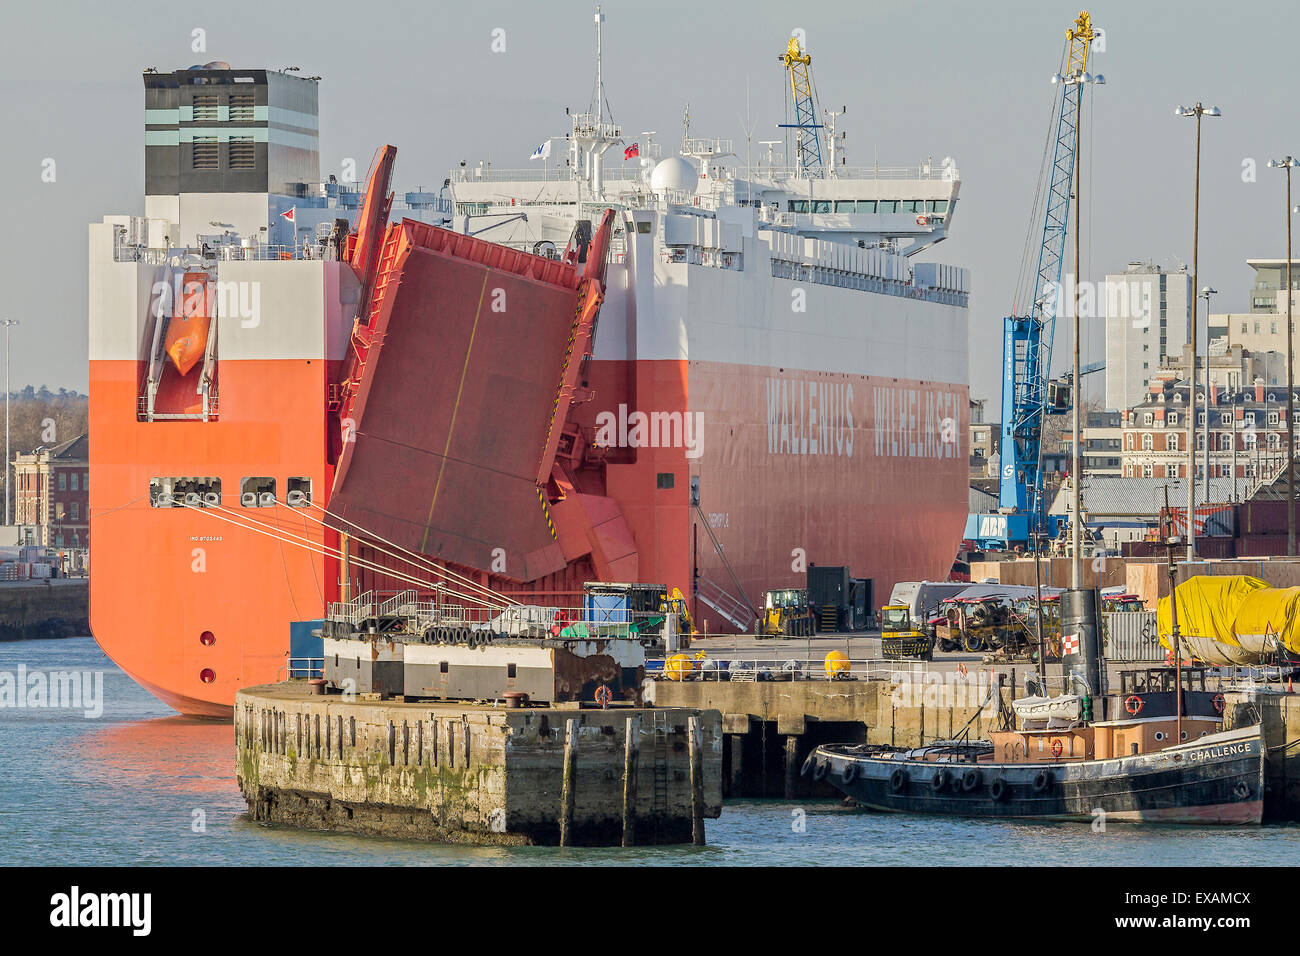 Carrier Loading Vehicles For Export Southampton UK - Stock Image